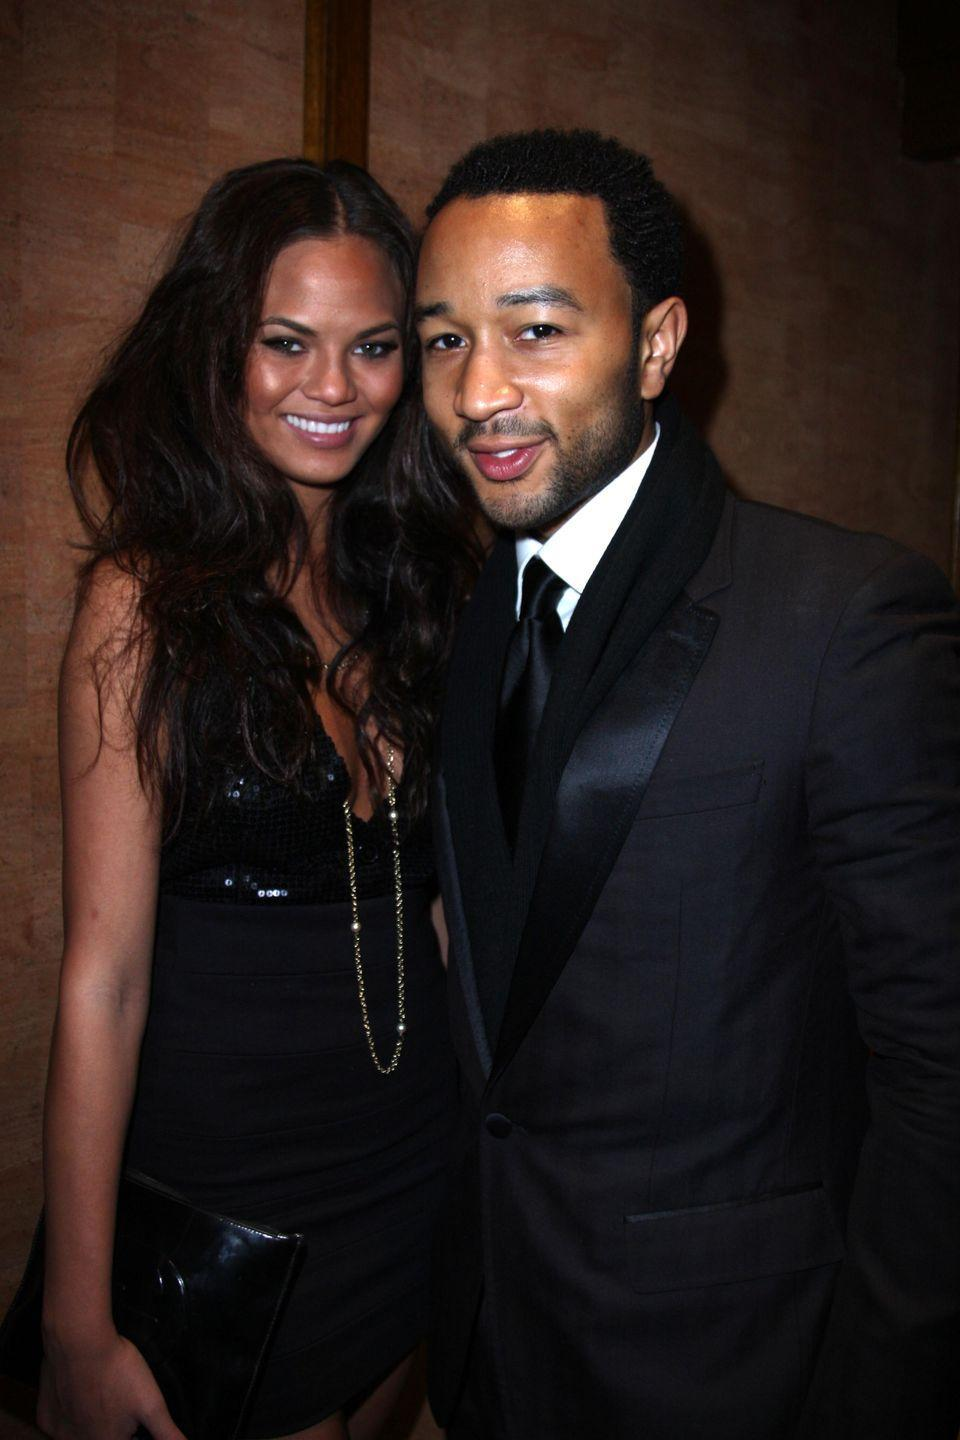 <p>A year after the couple first met on the set of Legend's music video, the couple attend an Esquire New Year's Eve party in New York.</p>